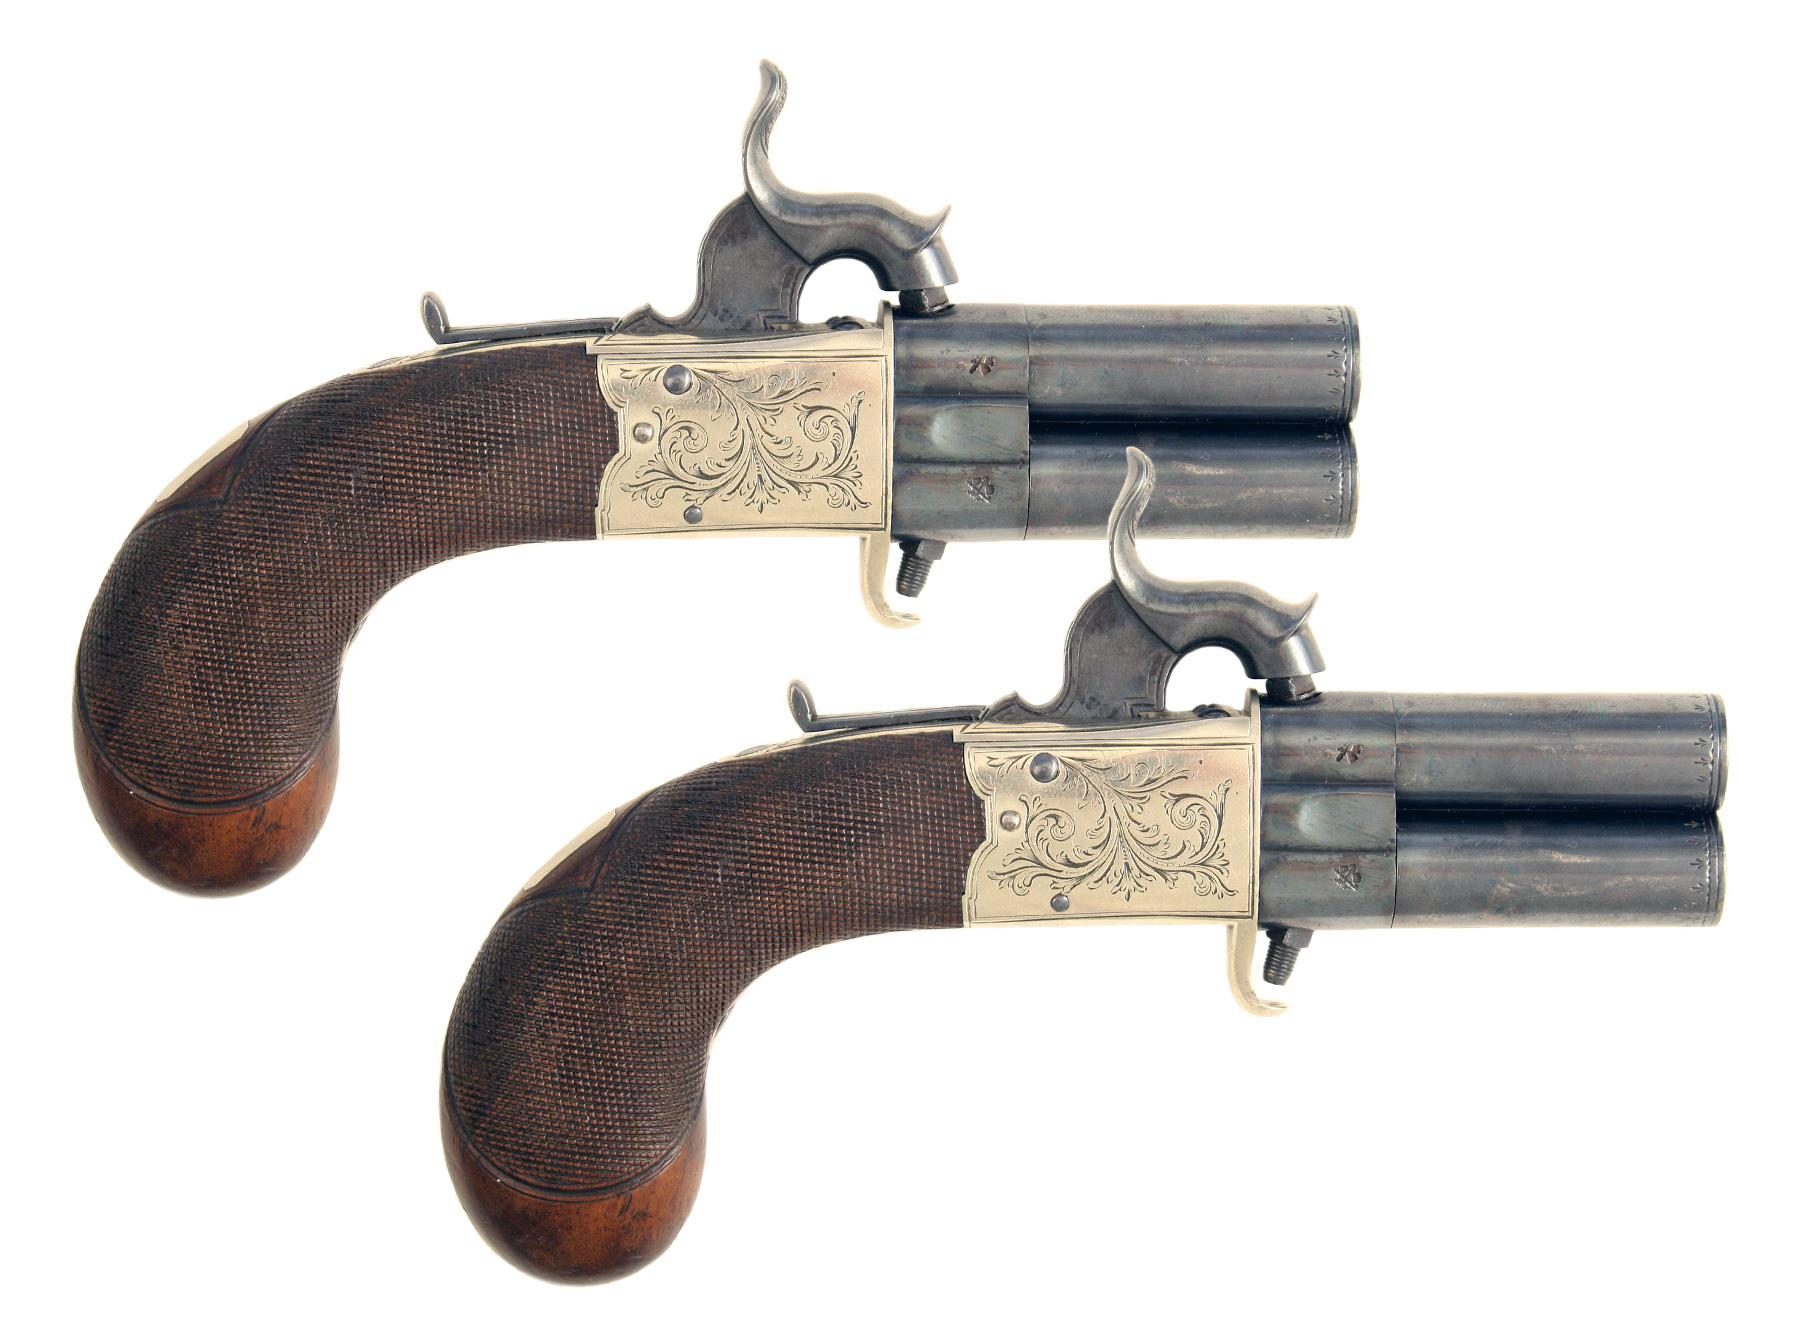 A Pair of Percussion Turn-Over Pistols